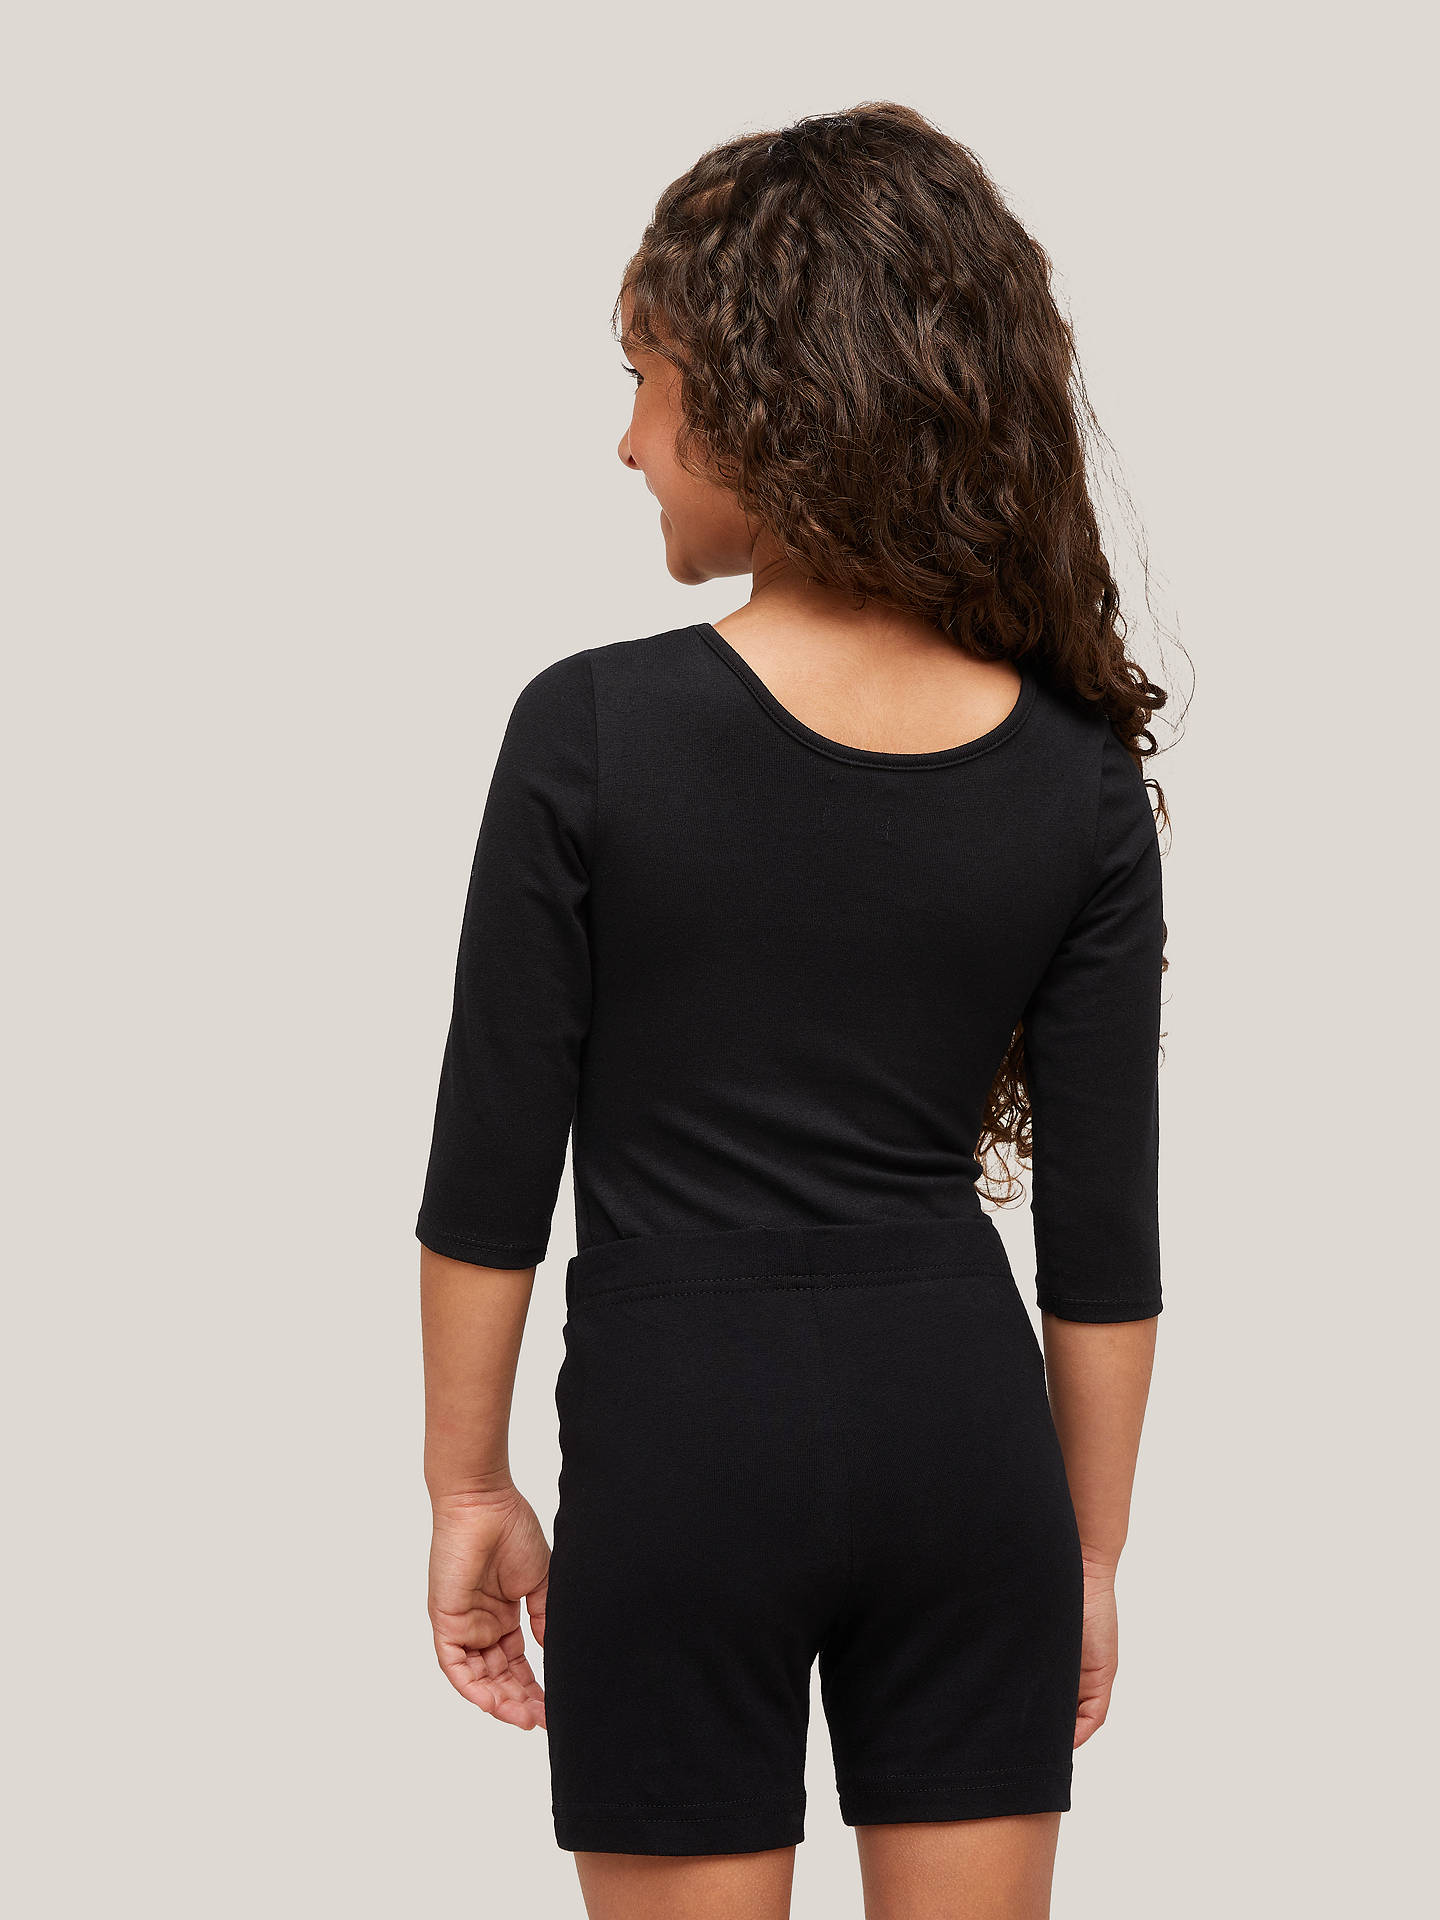 c7e4258e23d1 Buy John Lewis & Partners School Leotard, Black, 5-6 years Online at ...